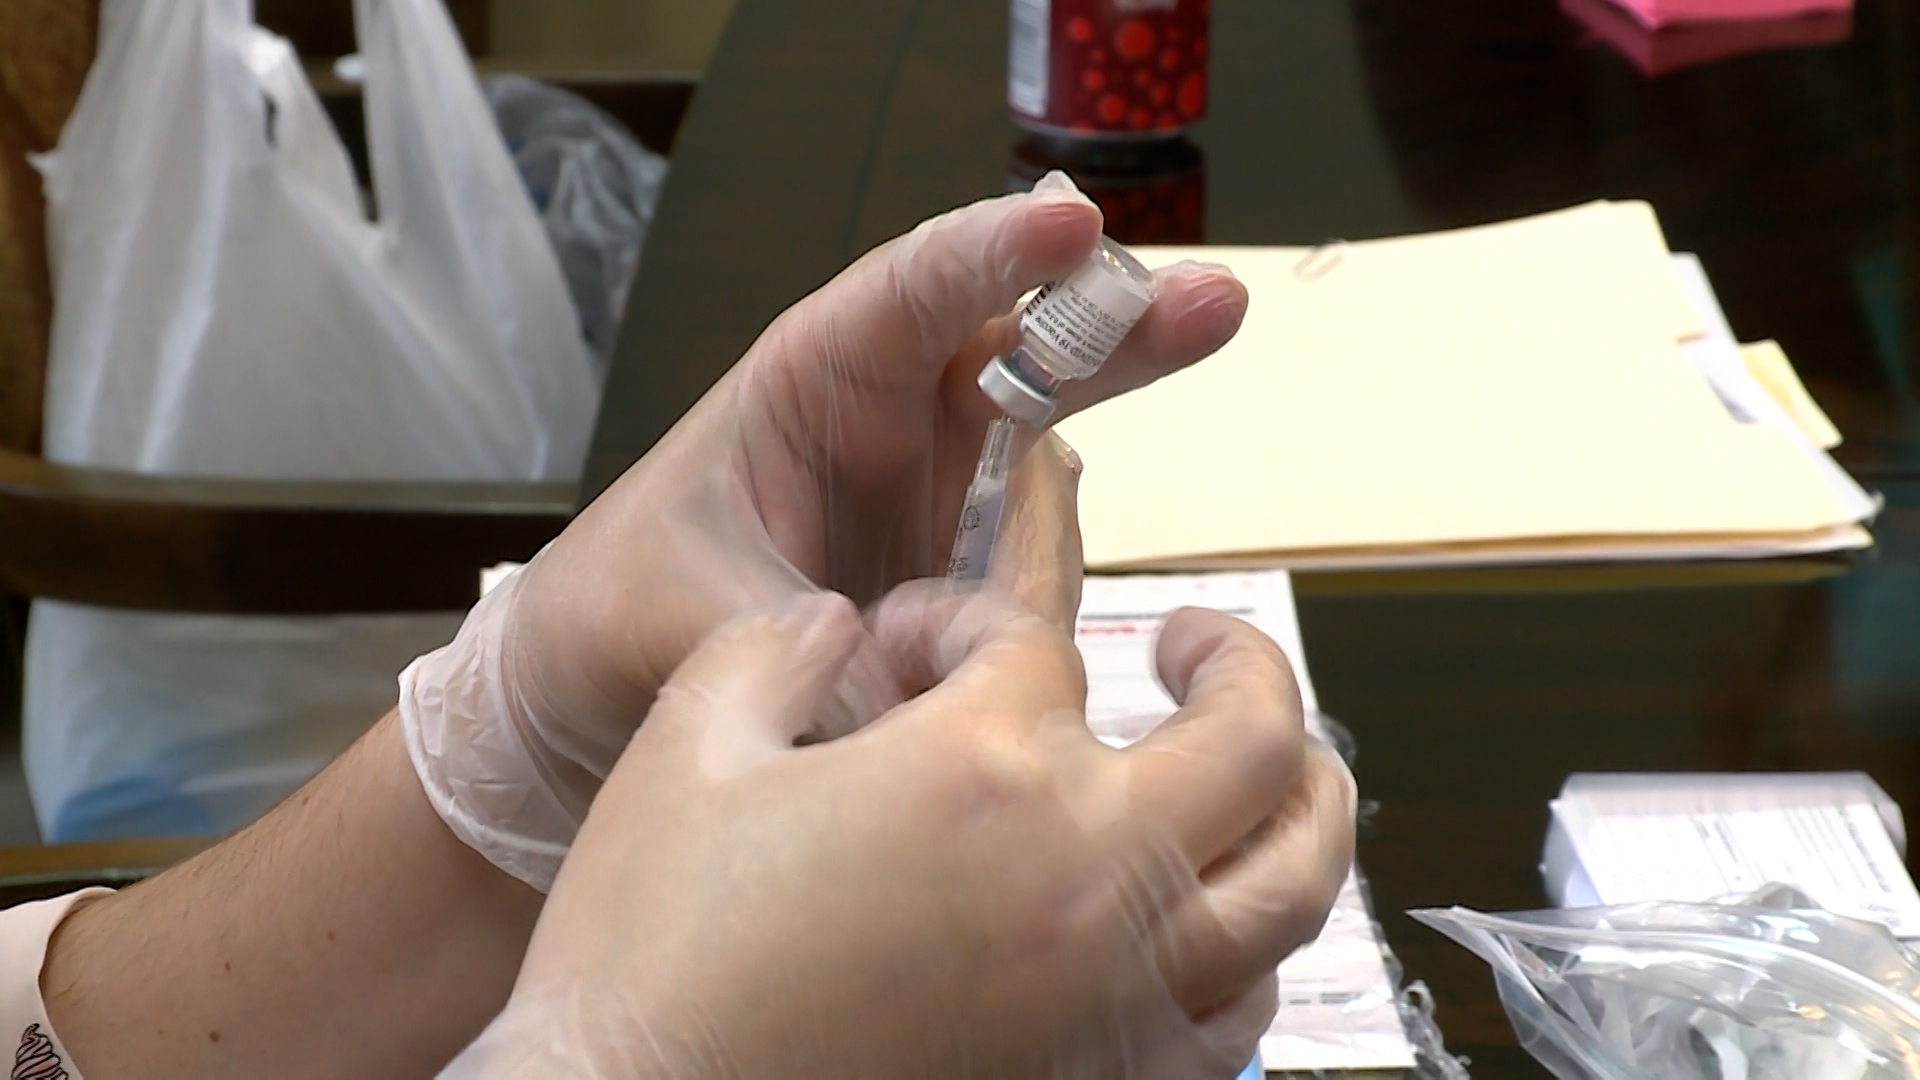 Data shows 29% of the state of Texas is fully vaccinated against COVID-19.